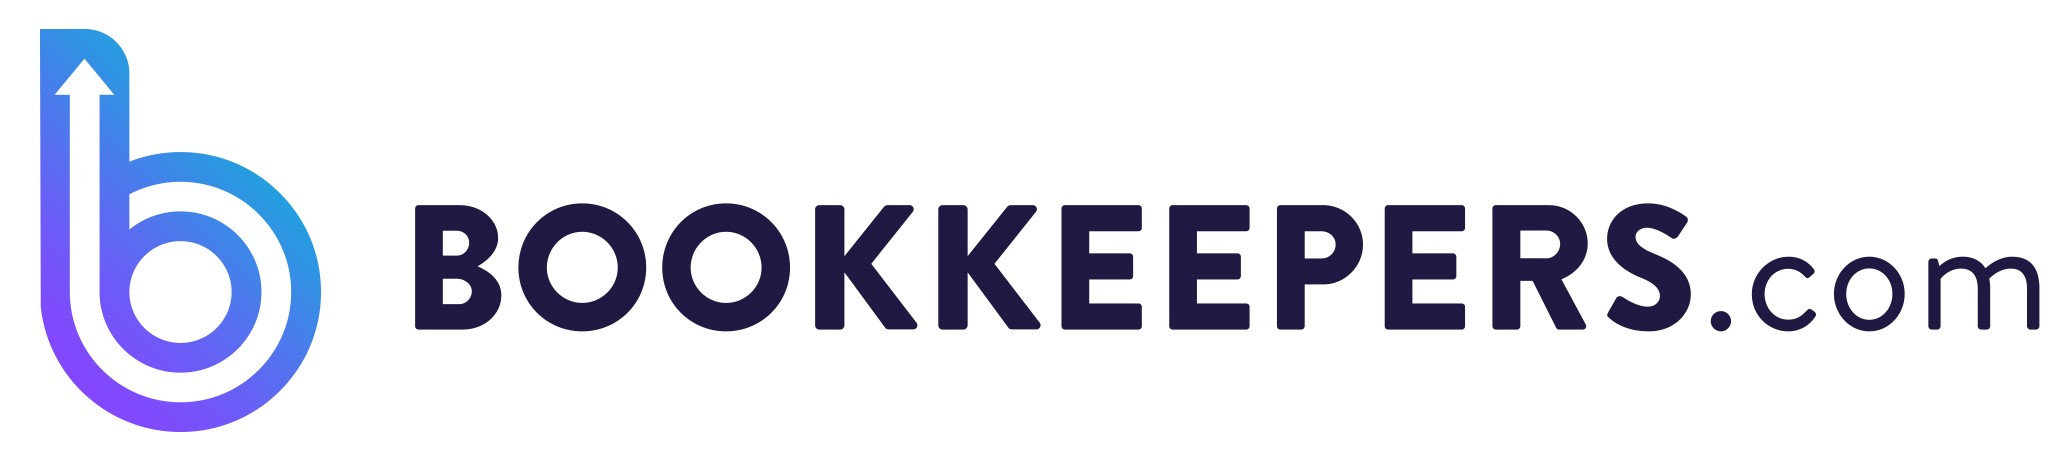 Bookkeeperslogo